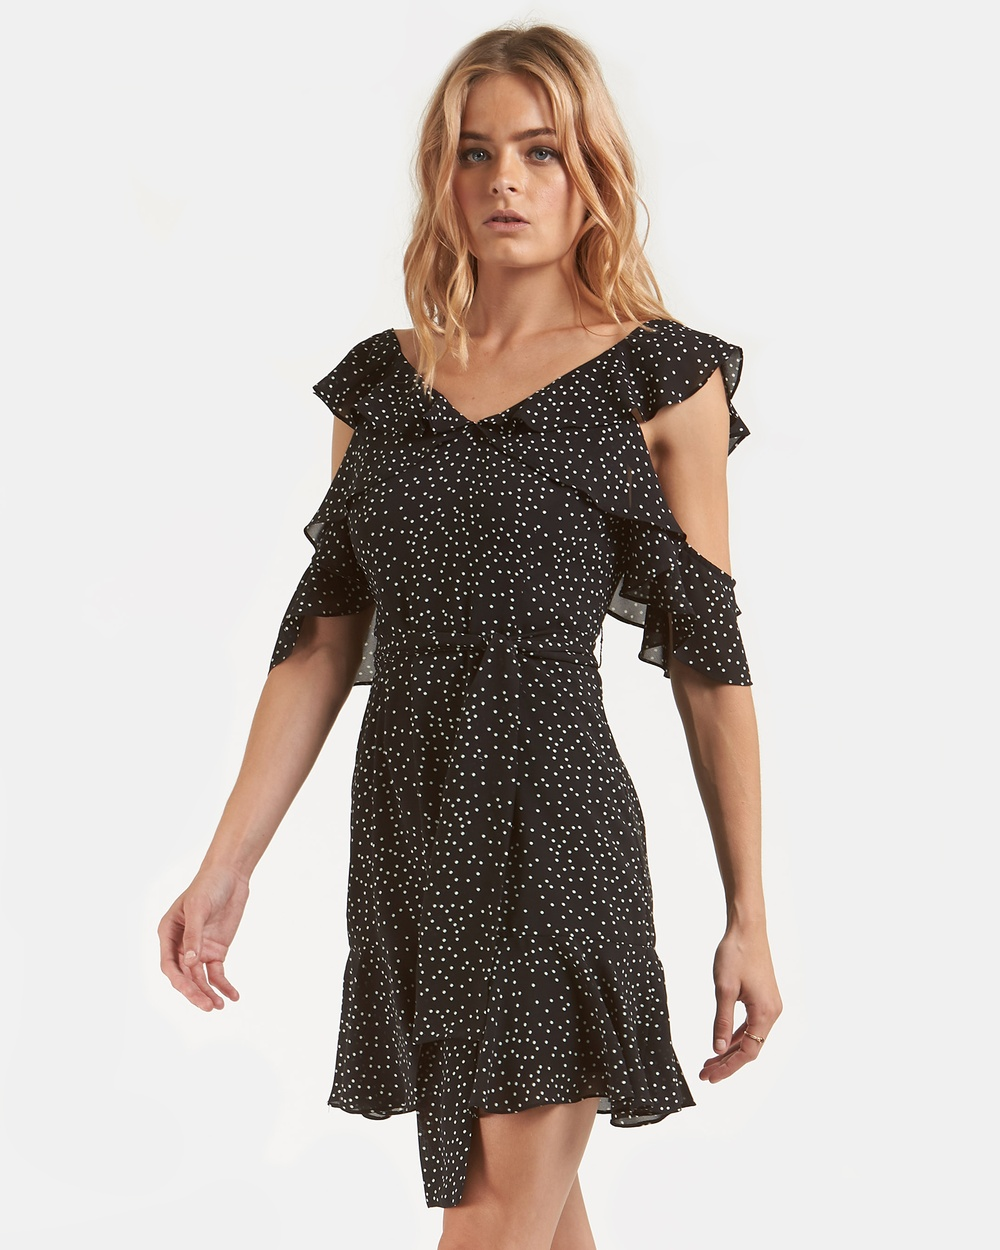 Amelius Black Spotty Dotty Dress